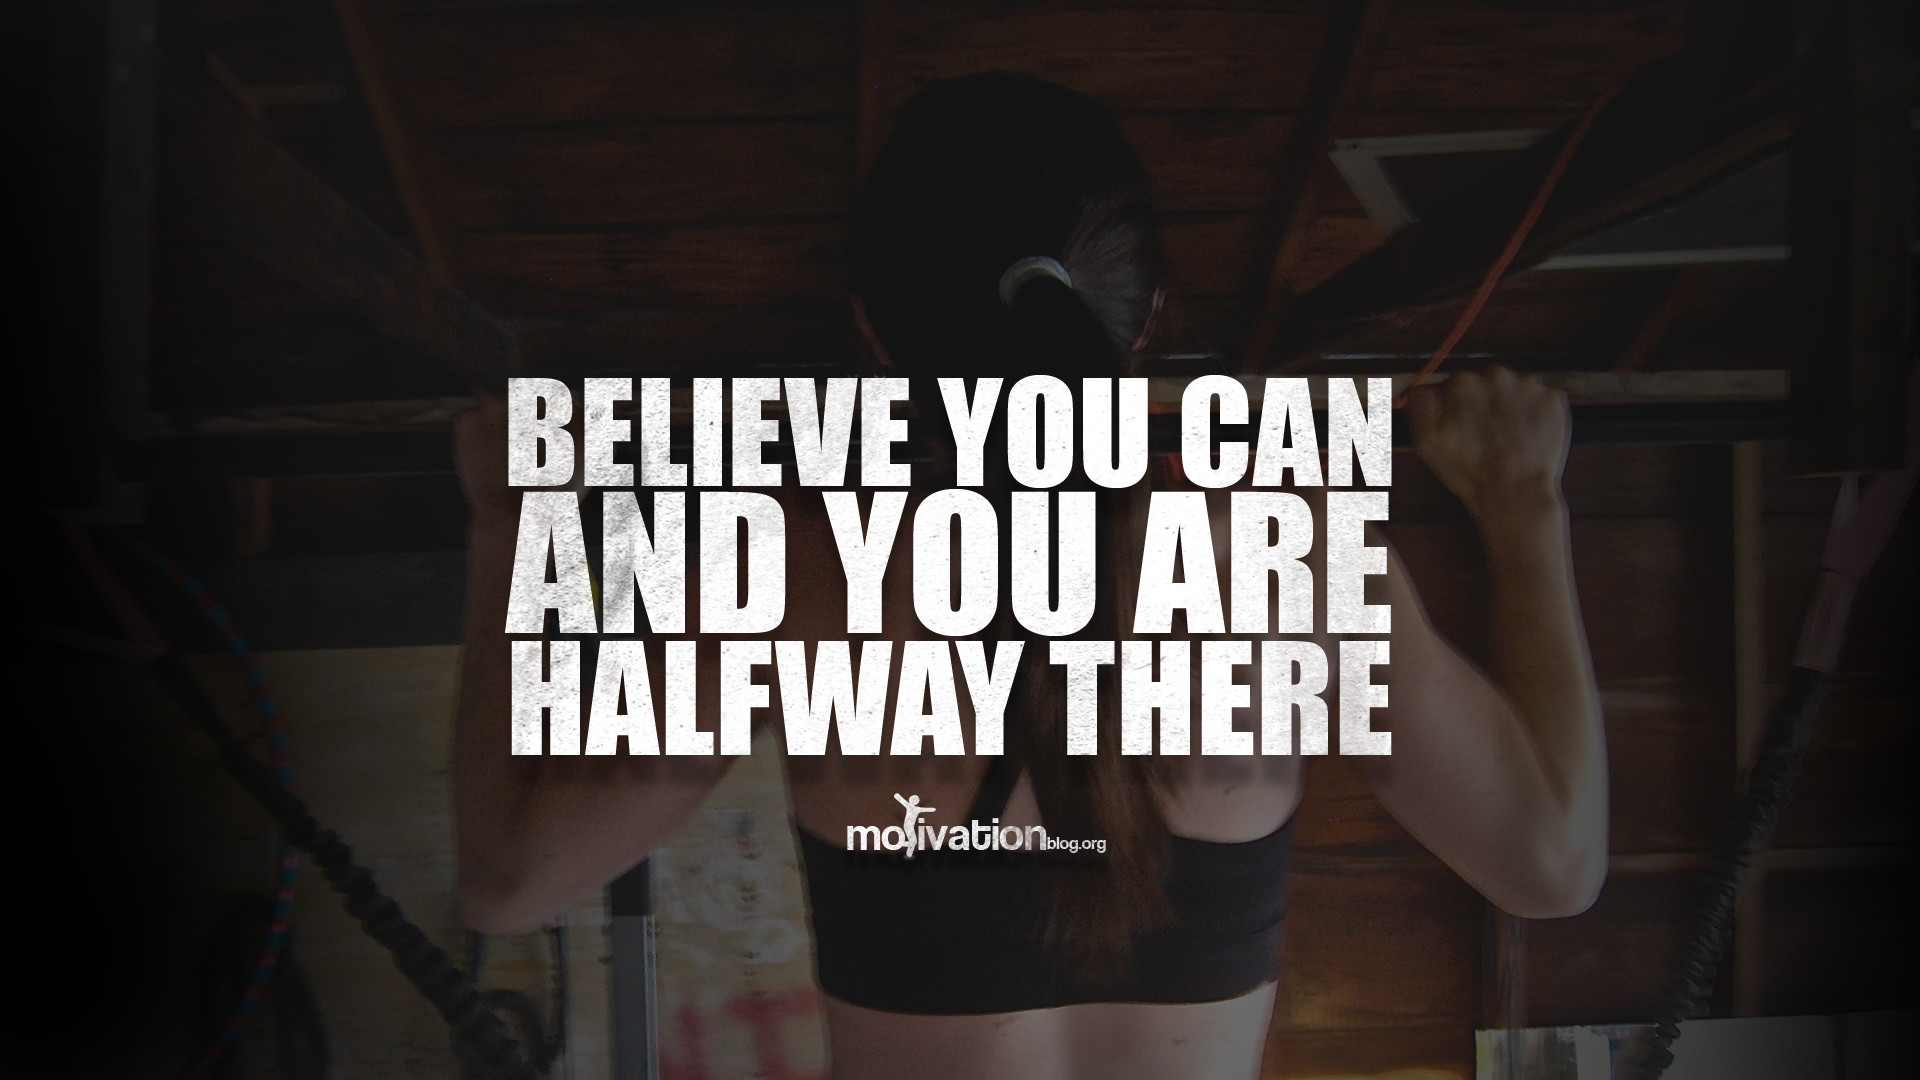 motivational workout wallpapers. Download this wallpaper. Check …